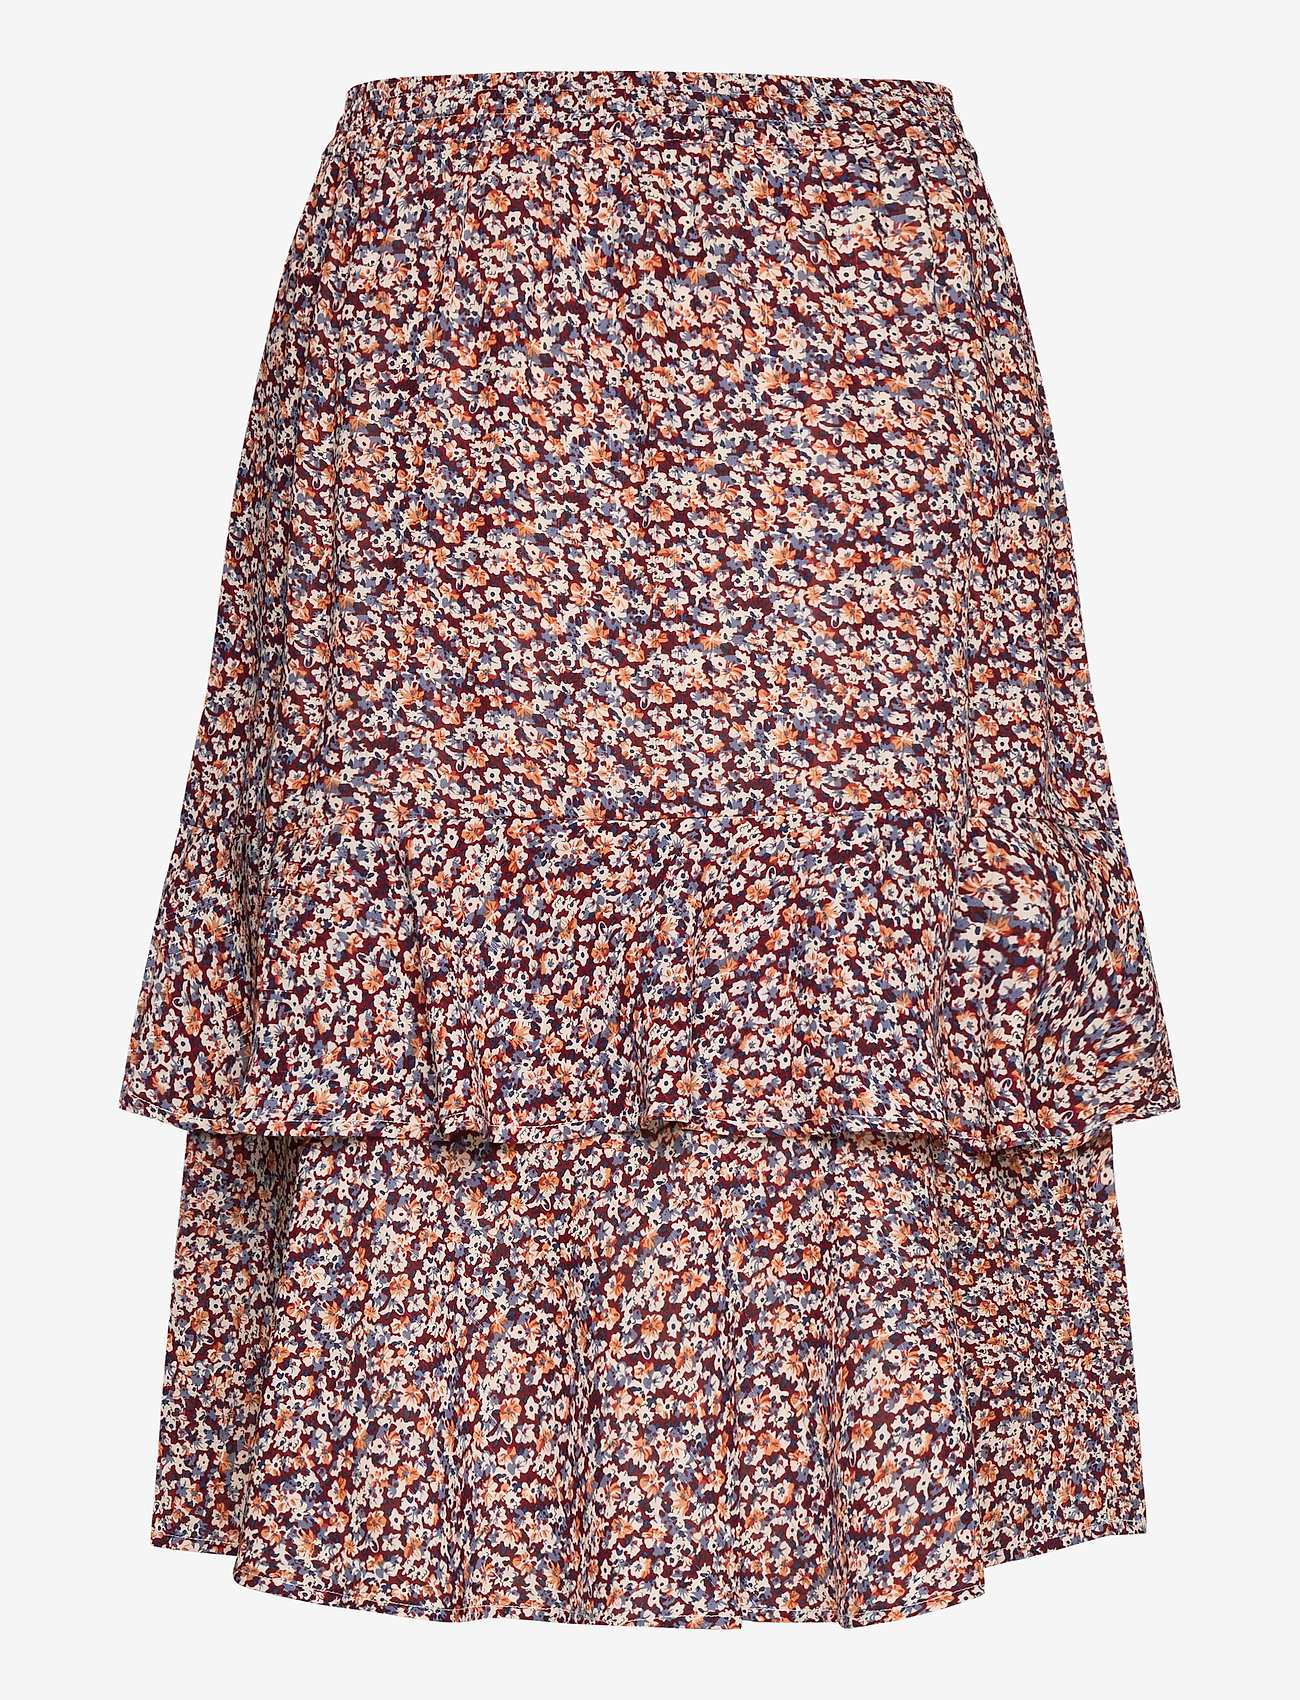 Minus - Vallie skirt - midinederdele - fiery flower print - 1